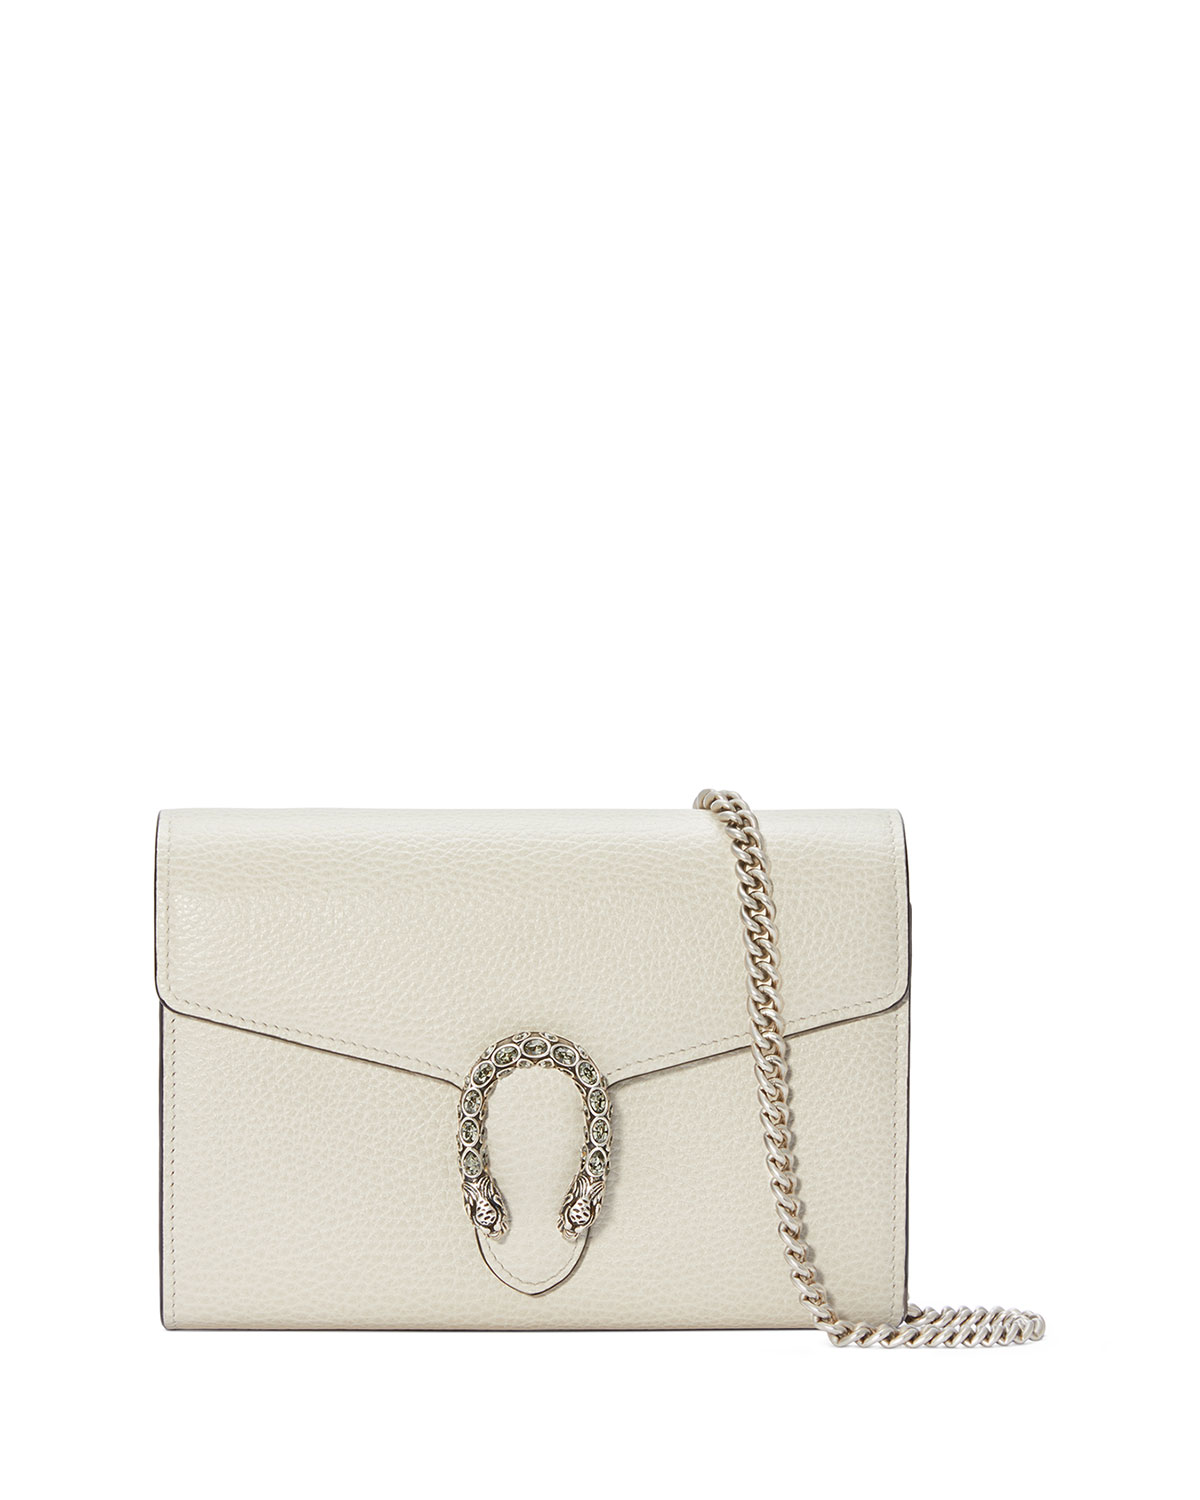 37ccaa39328 Gucci Small Dionysus Leather Clutch - White